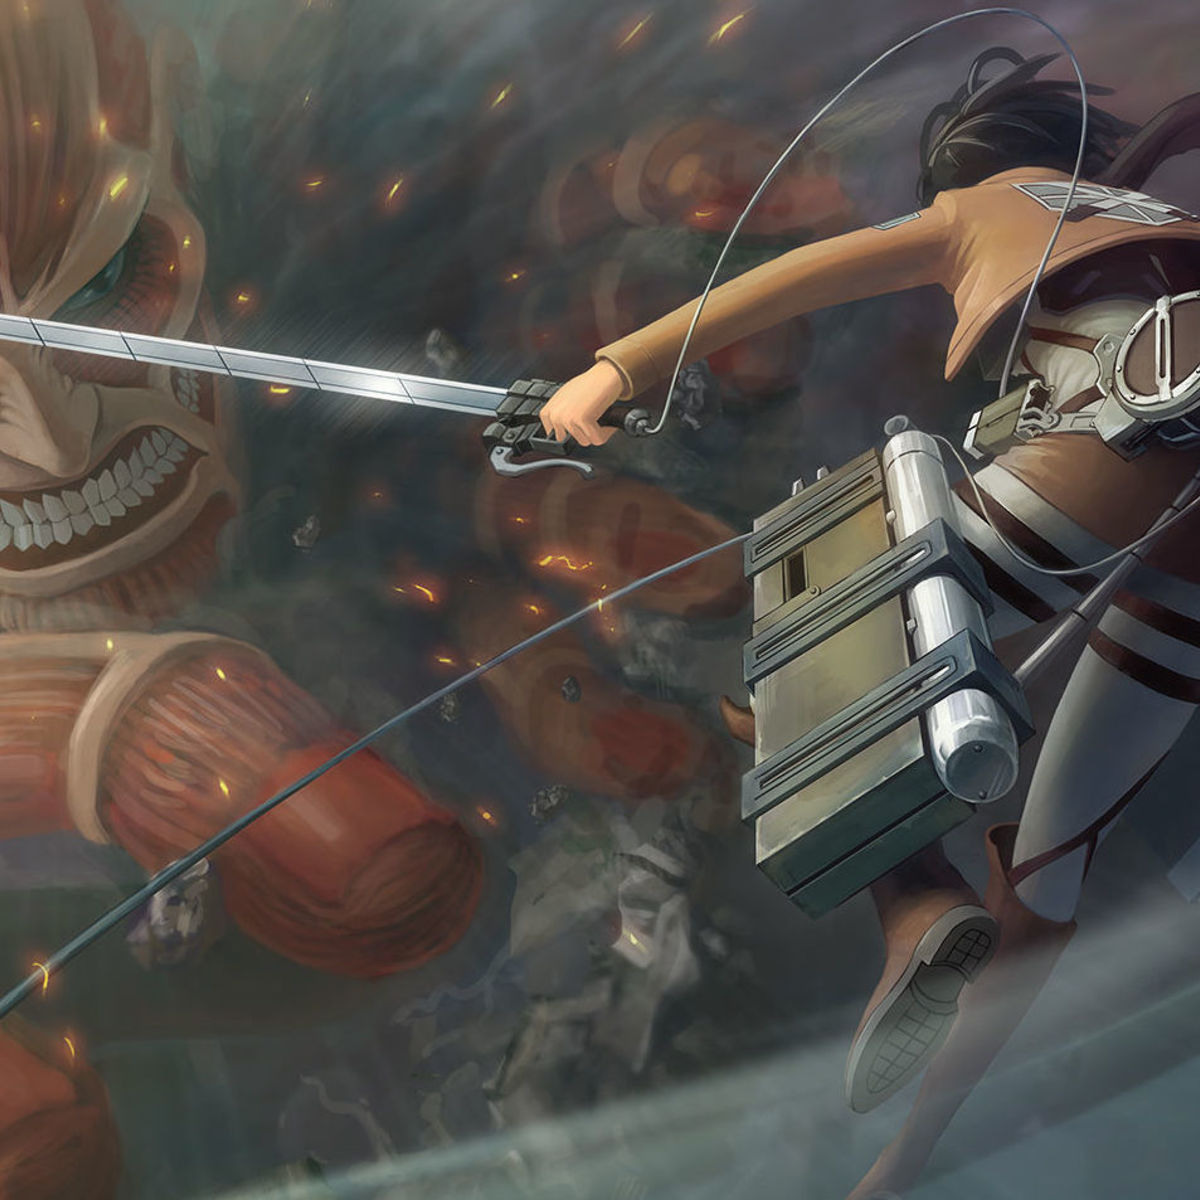 new-gameplay-trailers-for-the-attack-on-titan-game-have-fans-divided-attack-on-titan-768352.jpg